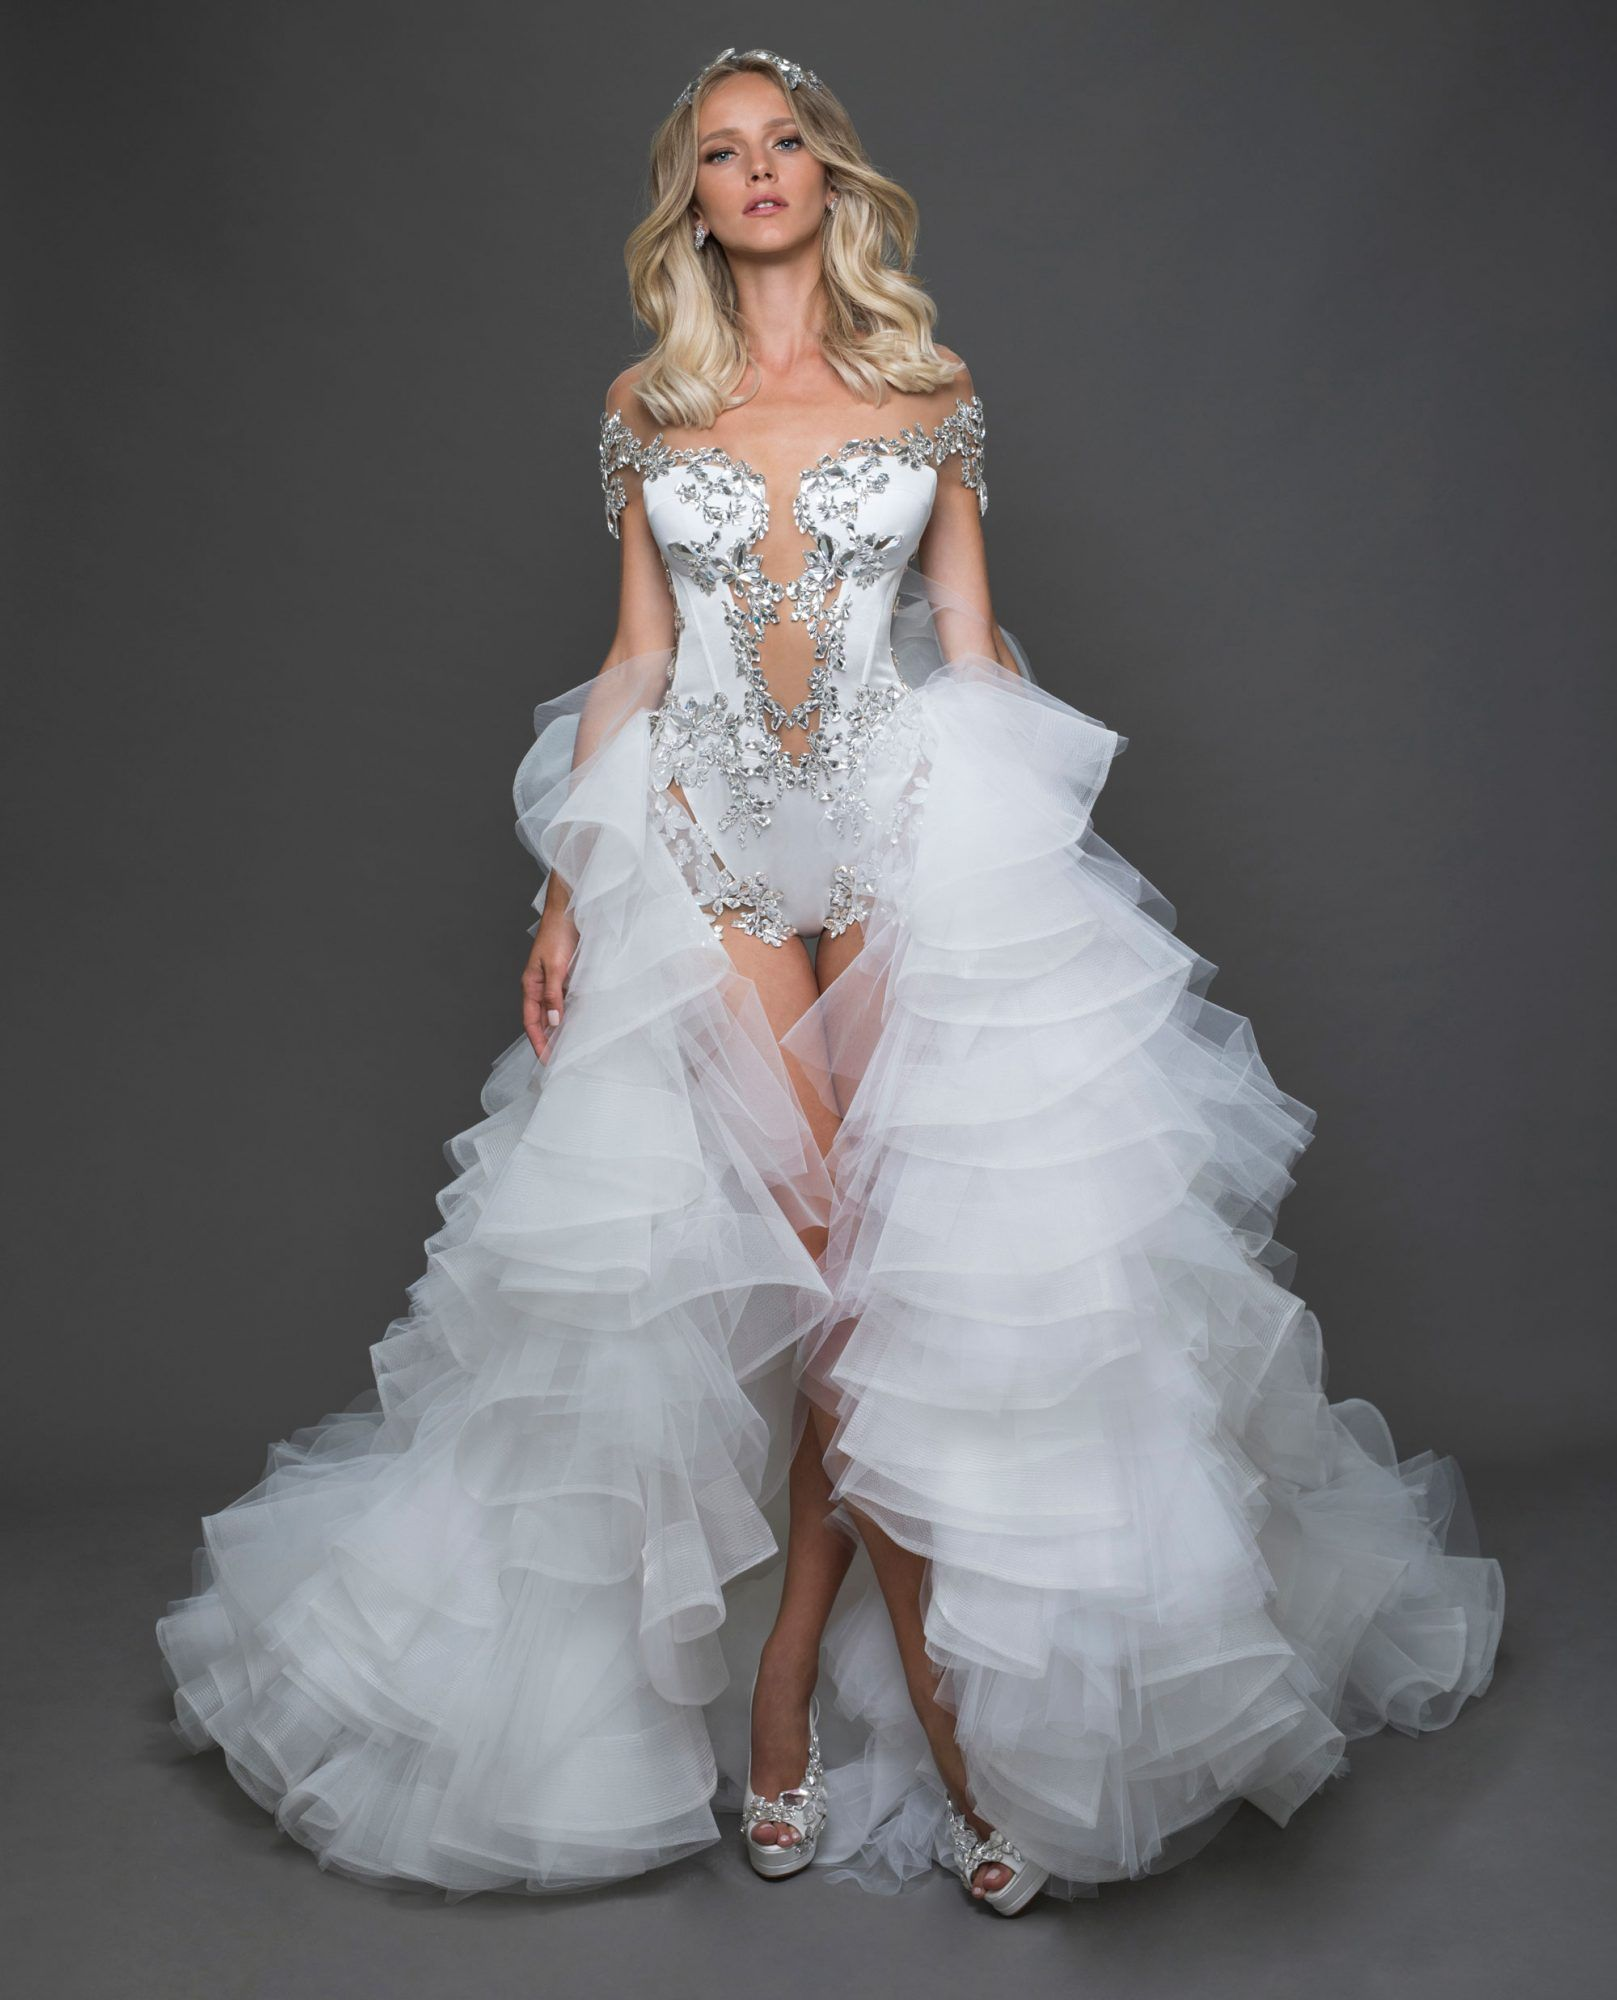 The Best Short Wedding Dresses From Bridal Fashion Week Pnina Tornai Wedding Dress Wedding Dresses Short Wedding Dress [ 2000 x 1617 Pixel ]